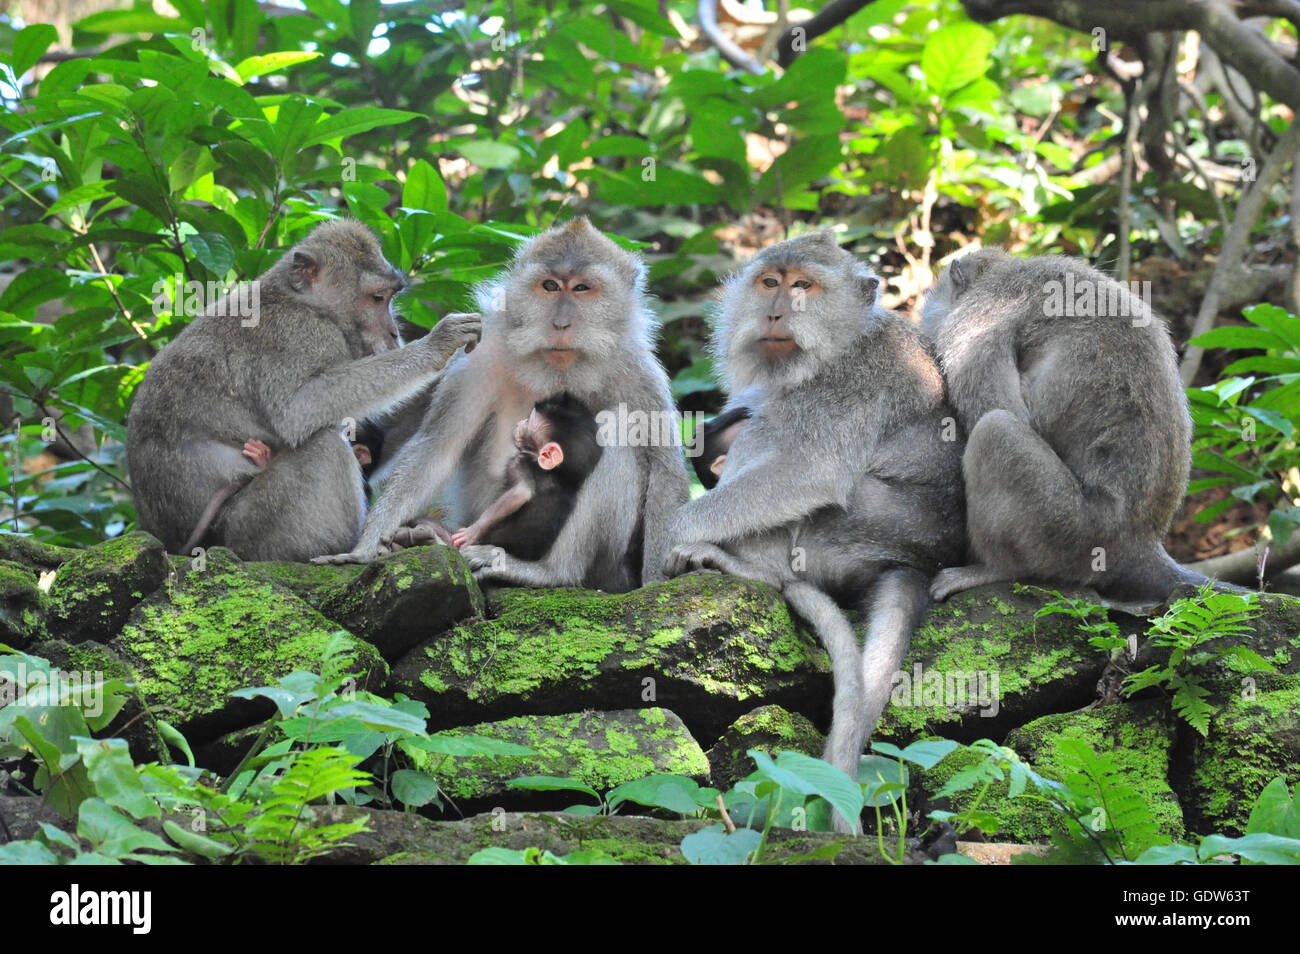 A monkey family with two babies in Bali Ubud Sacred Monkey Forest Temple - Stock Image